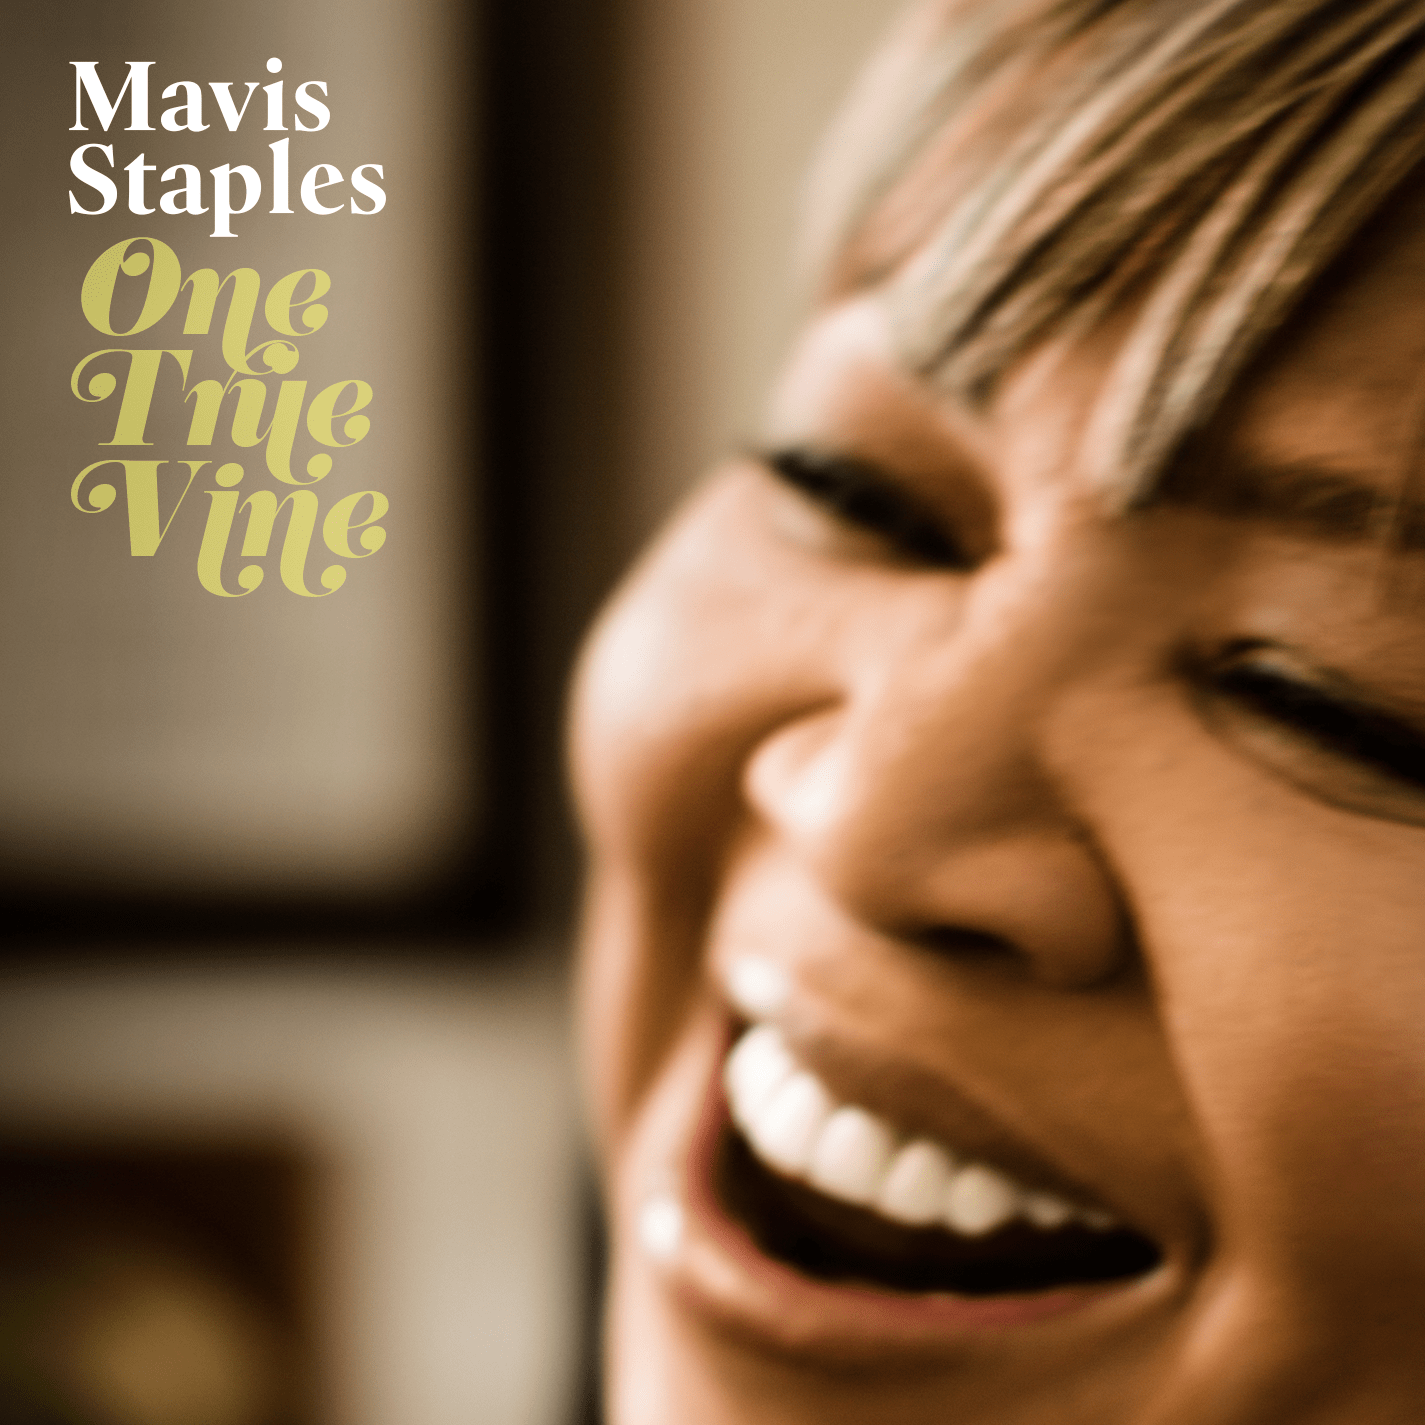 One True Vine – Mavis Staples